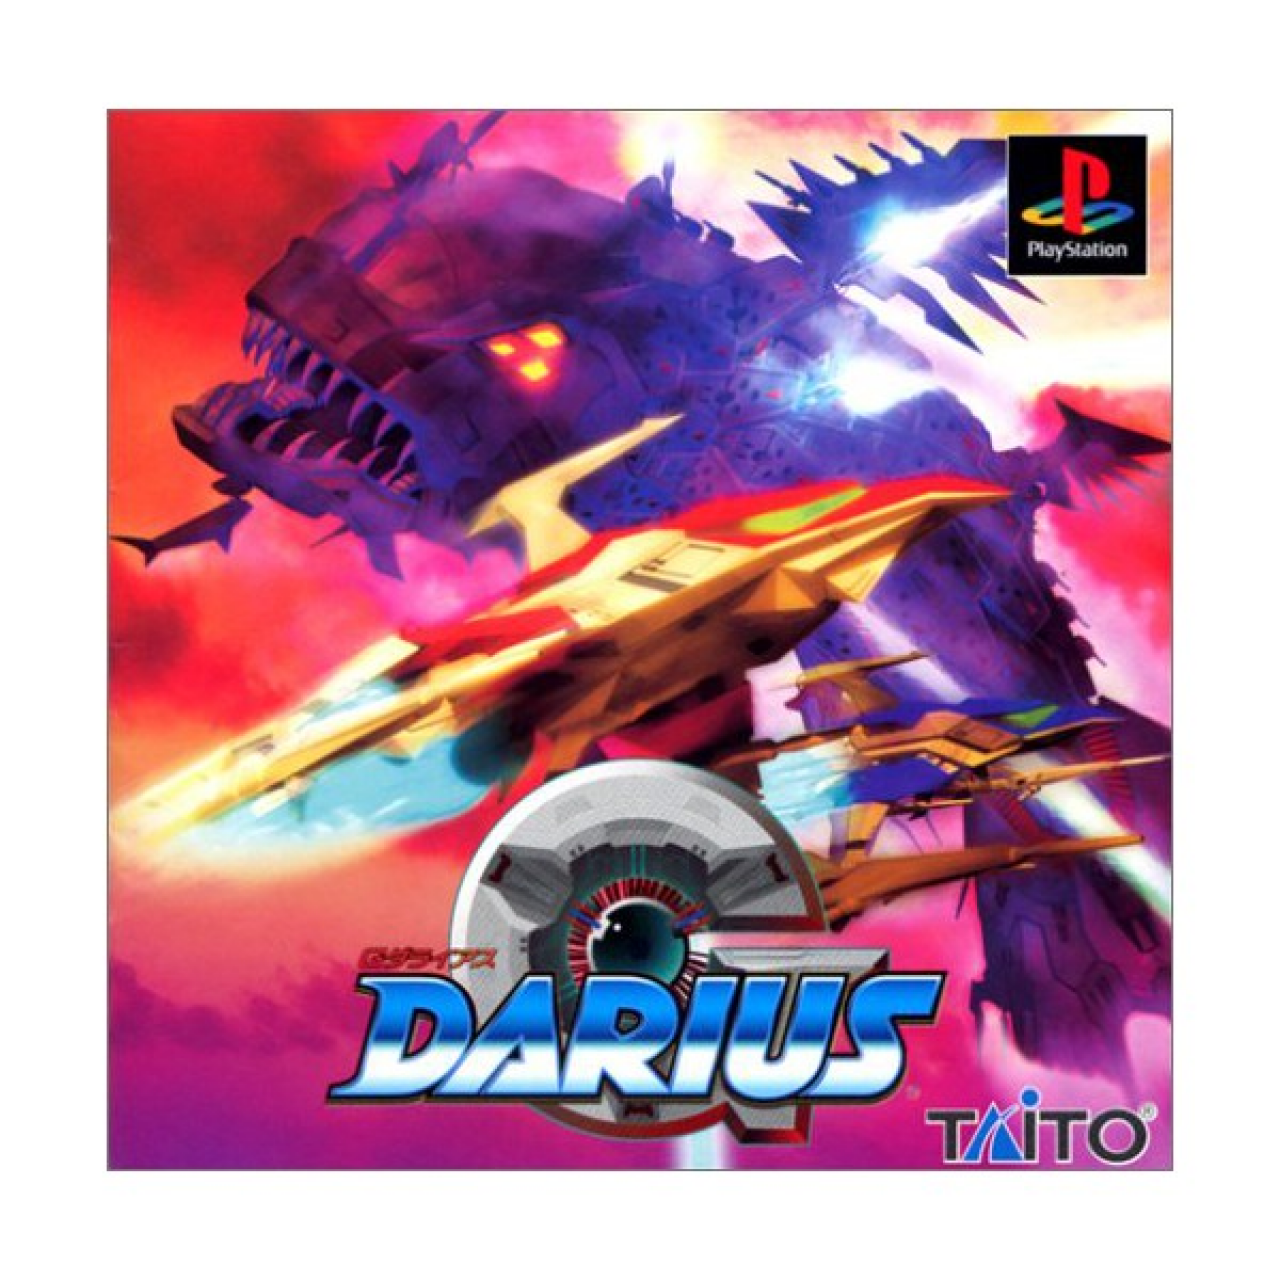 G-Darius - [Playstation] - #0061 - Review [Fr]